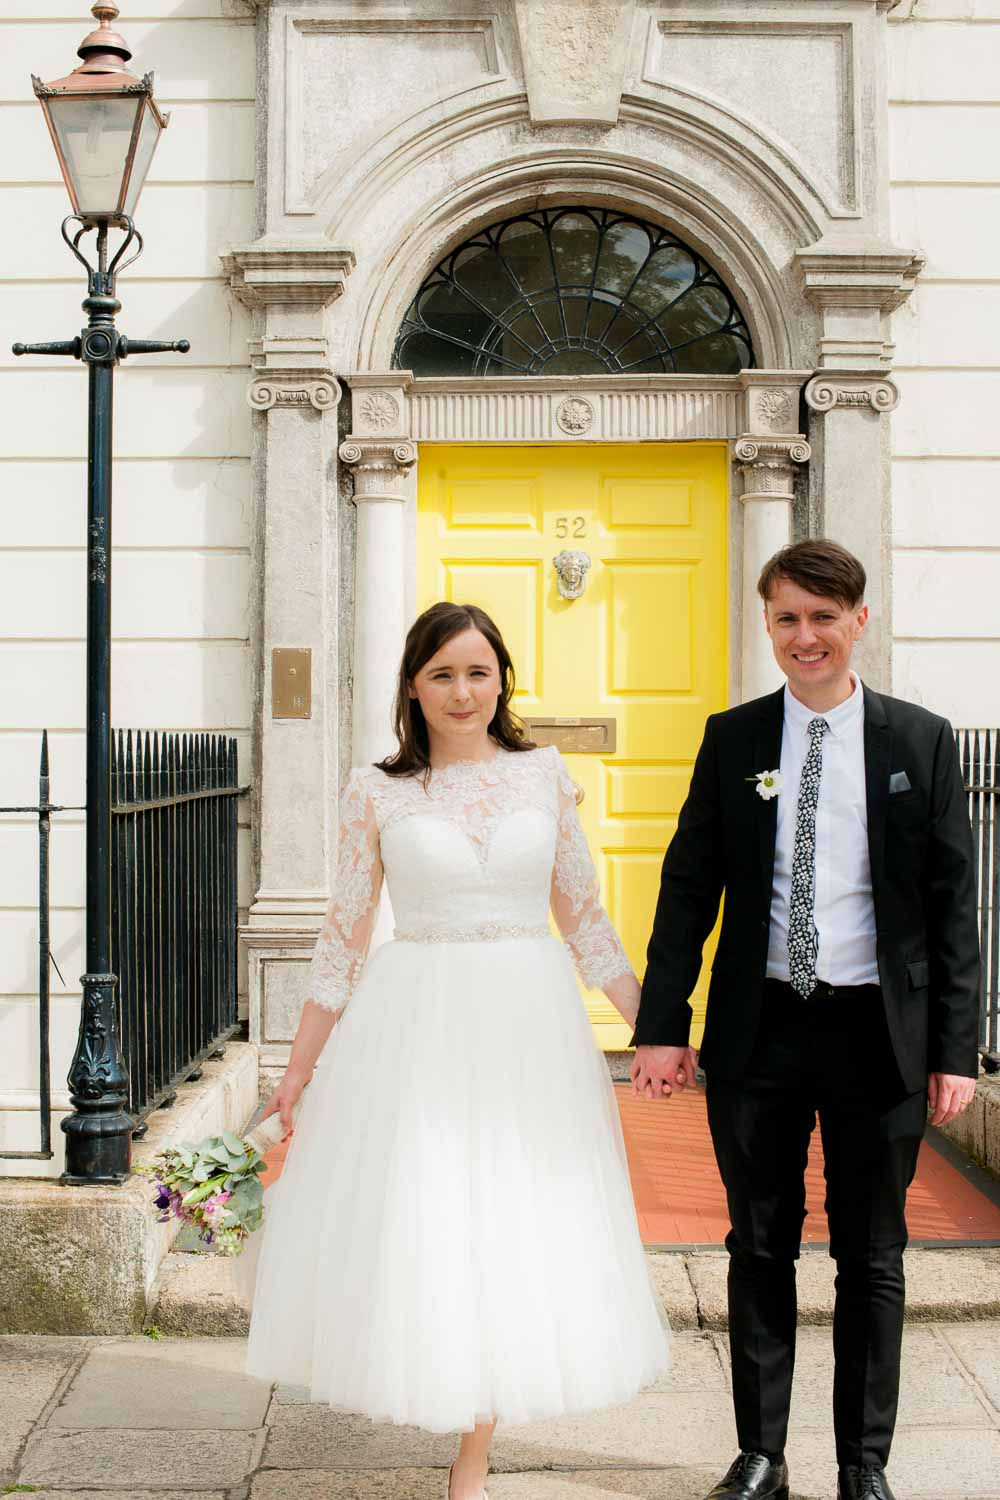 Registry Office Photography of the bride and groom standing at a Georgian door in Dublin